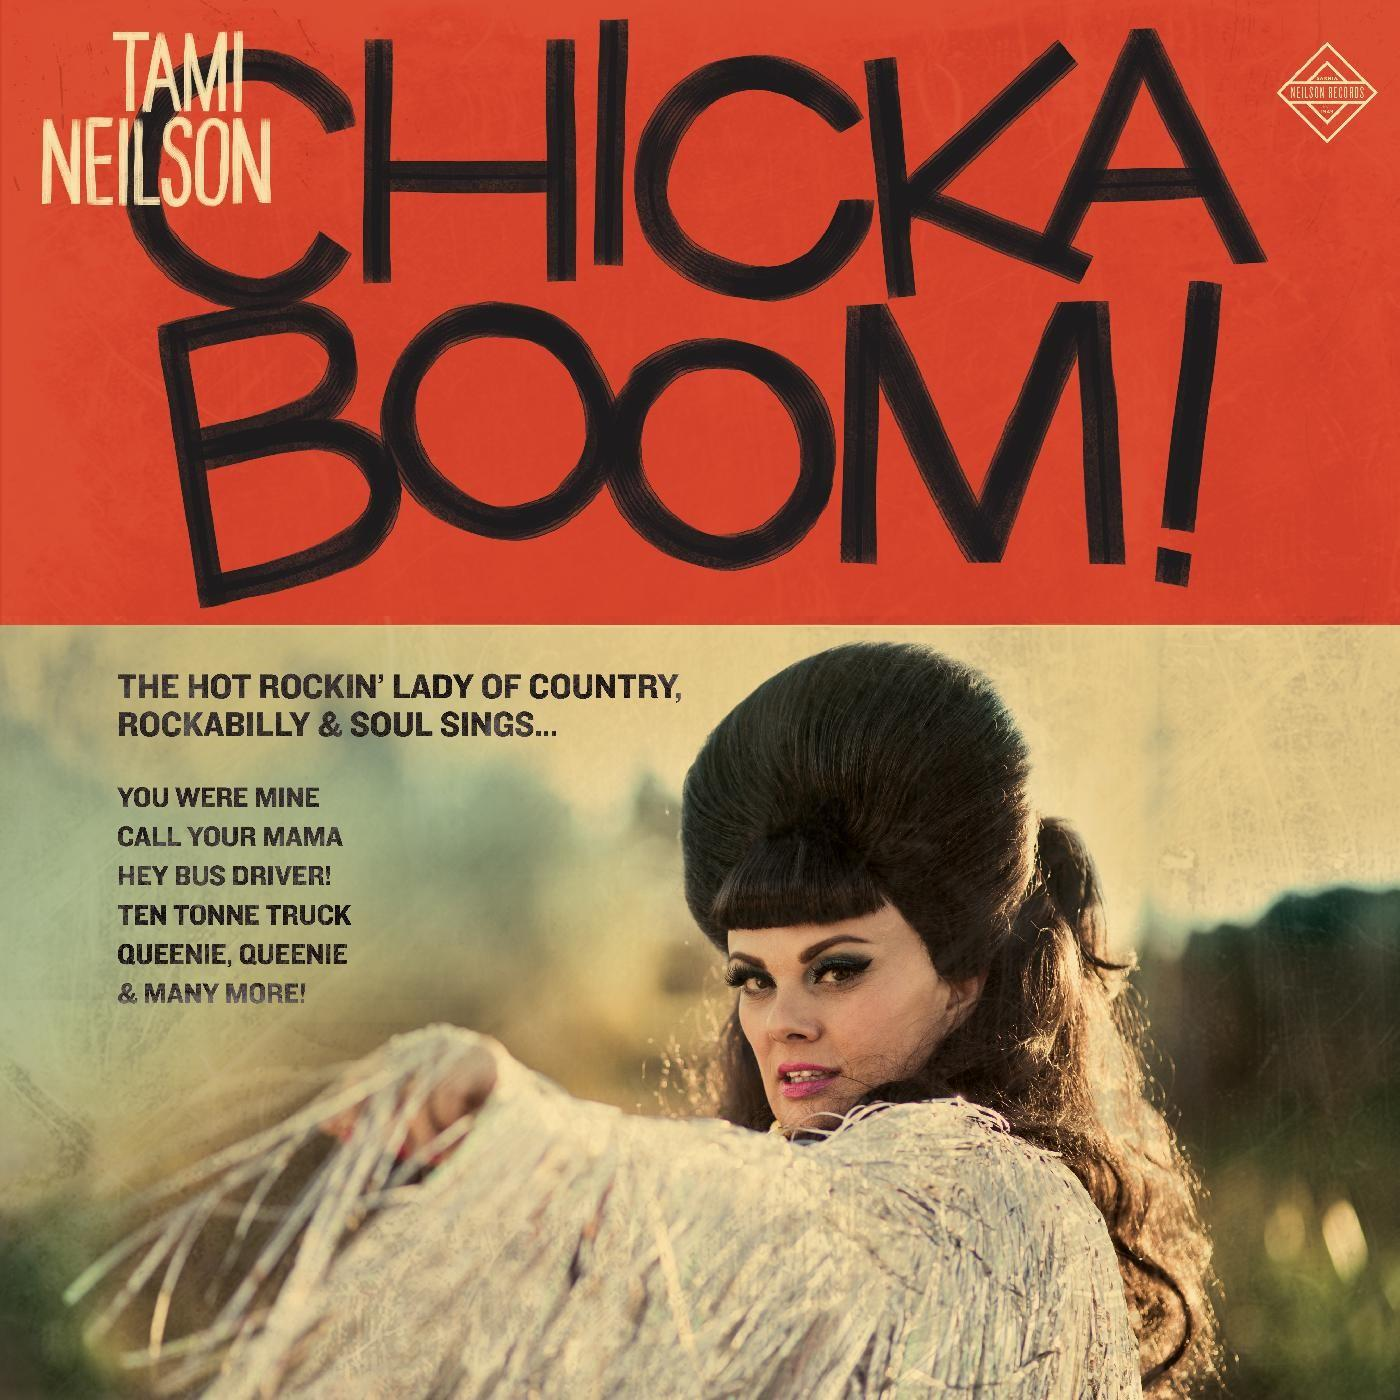 OUTS9130LP Outside Music  Tami Neilson Chickaboom! (LP)